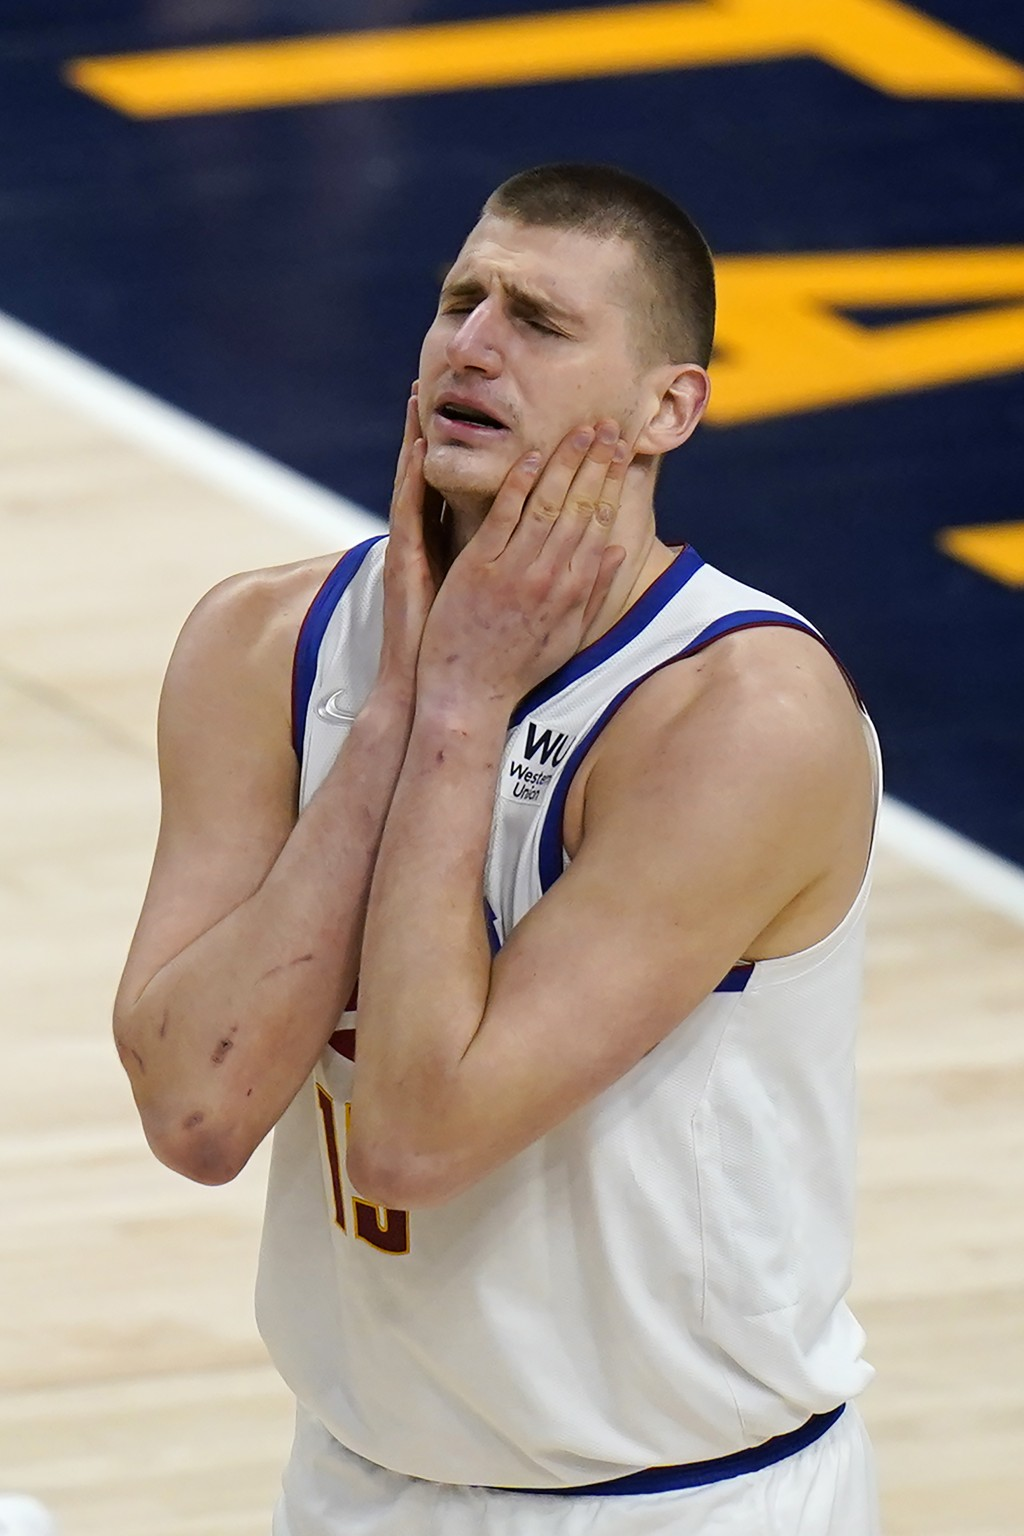 Denver Nuggets center Nikola Jokic reacts after fouling a Utah Jazz player during the first half of an NBA basketball game Friday, May 7, 2021, in Sal...